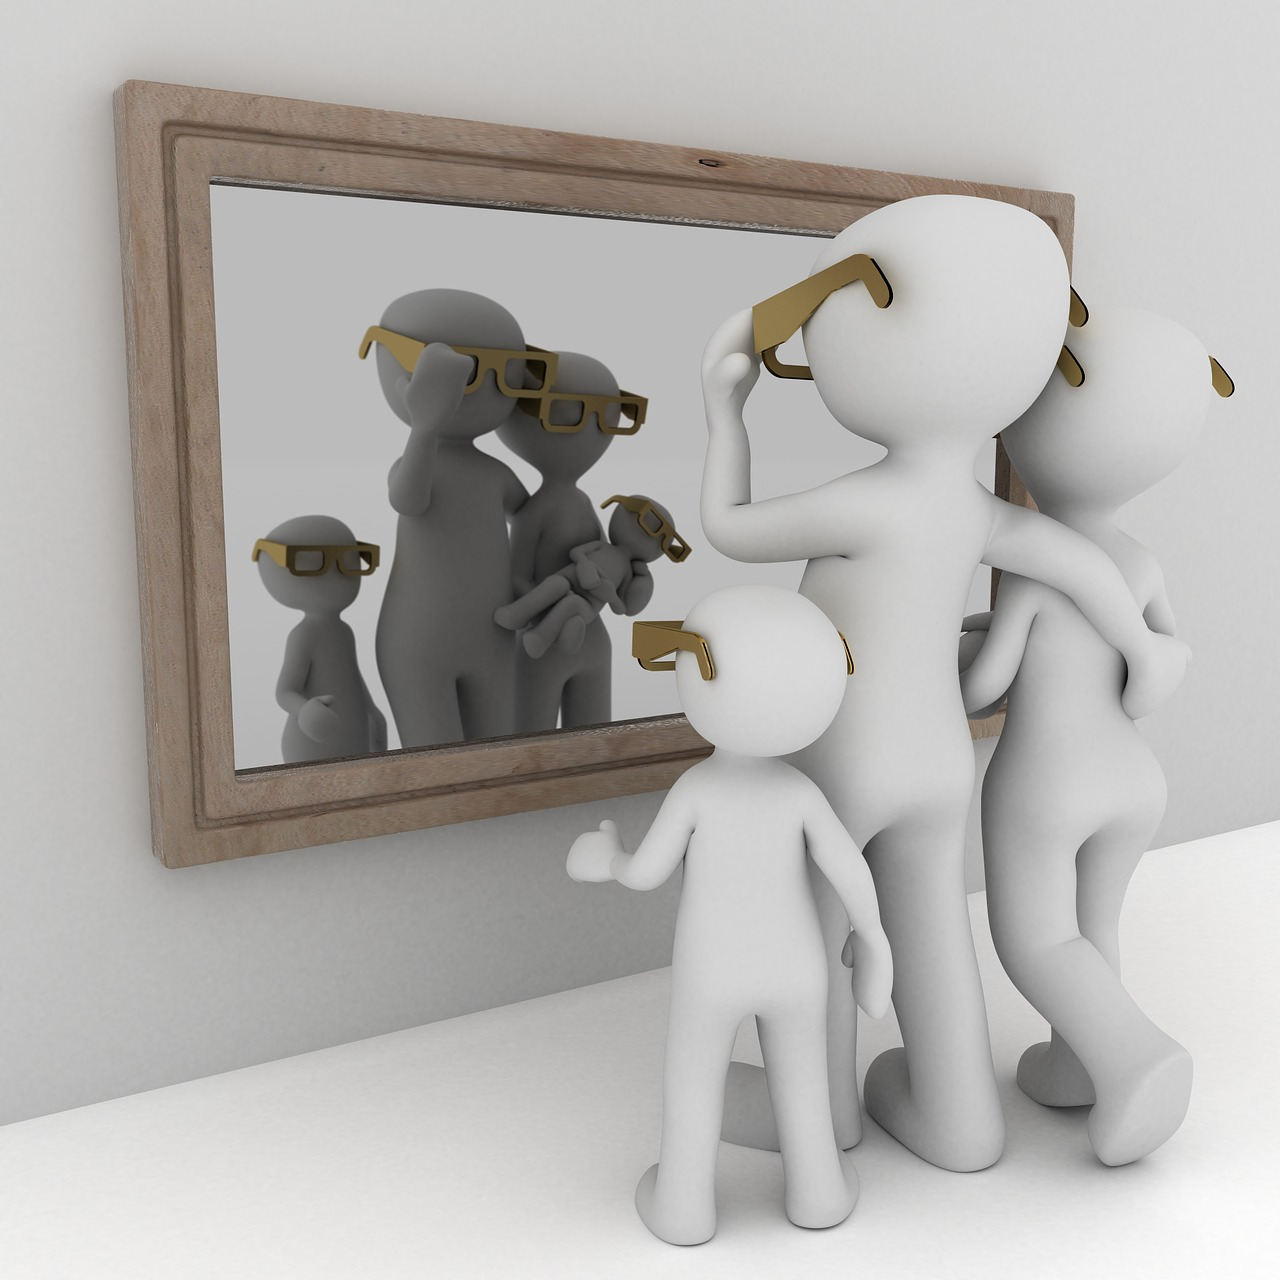 Image of a family of stick figures looking at themselves in the mirror